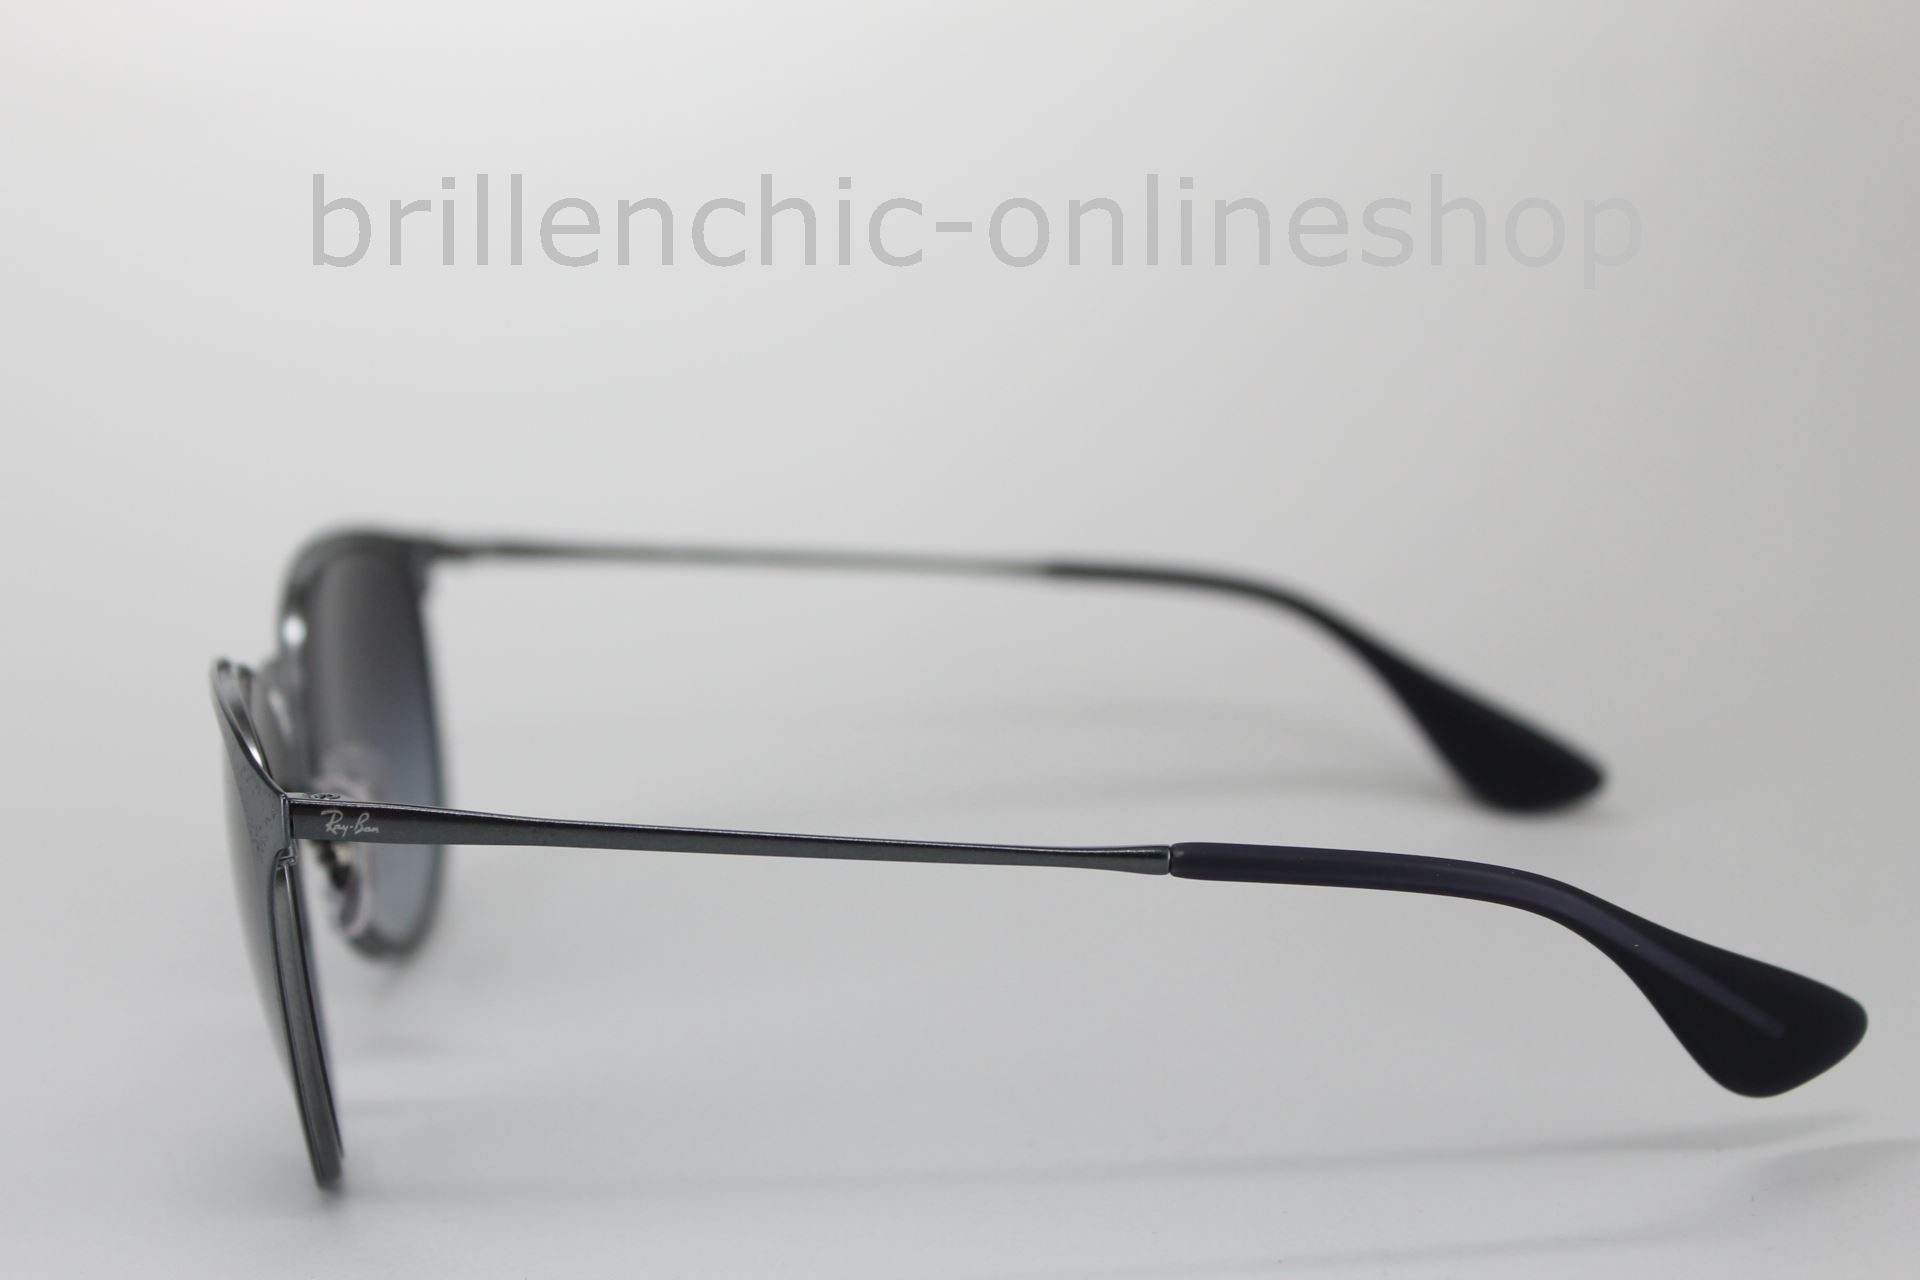 97fb78fcc5fd1 Brillenchic-onlineshop in Berlin - Ray Ban ERIKA METAL RB 3539 192 8G